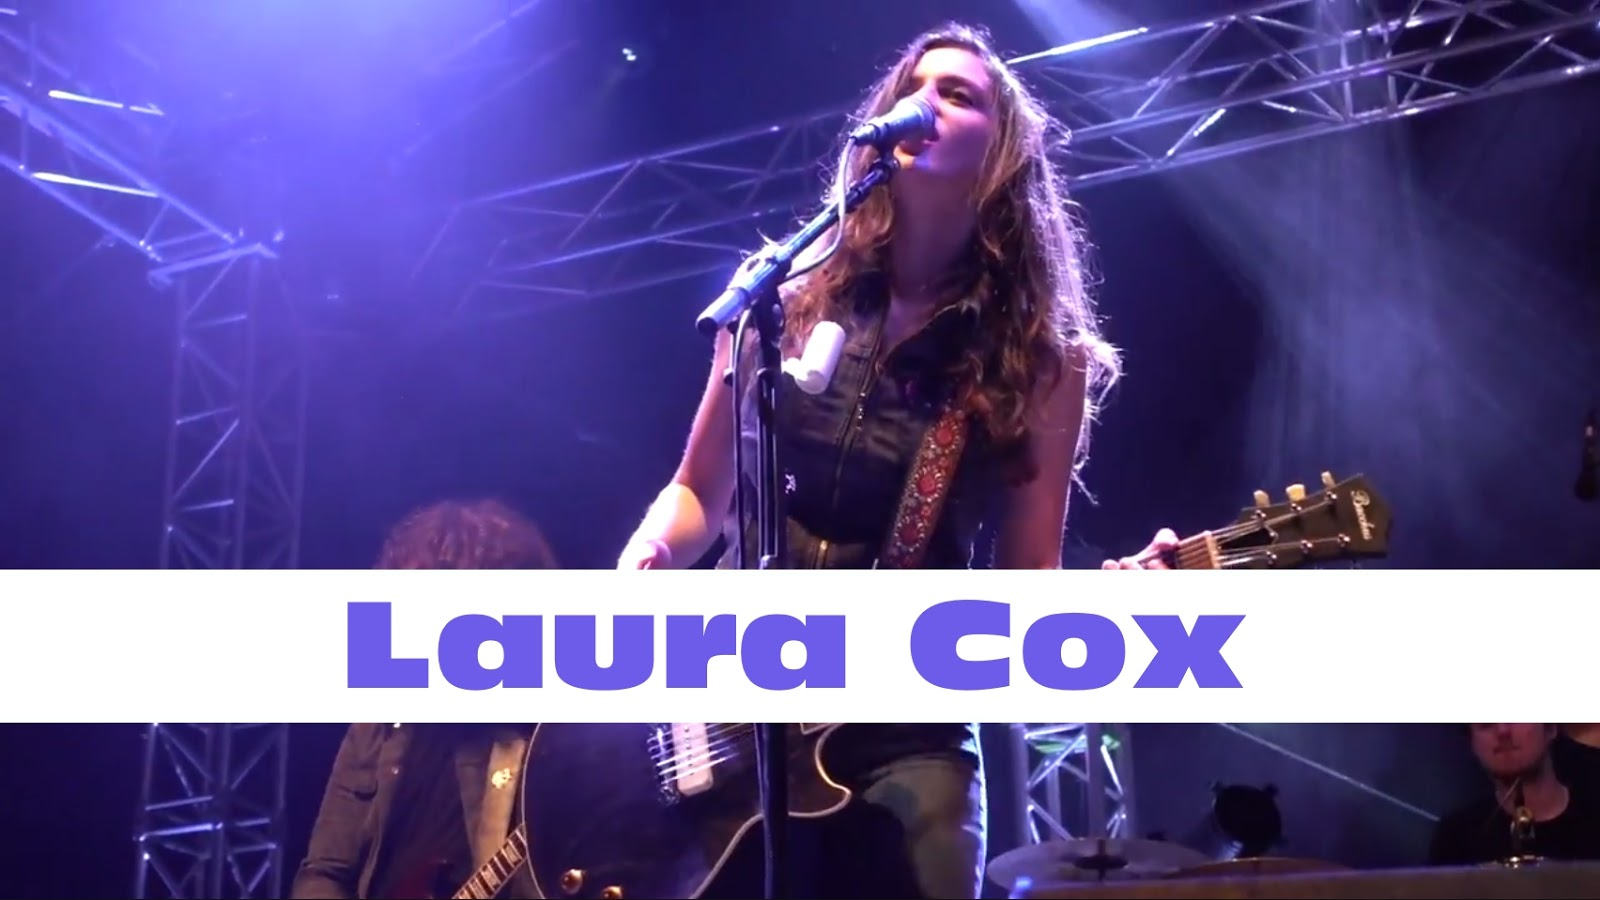 Laura Cox Band Tour